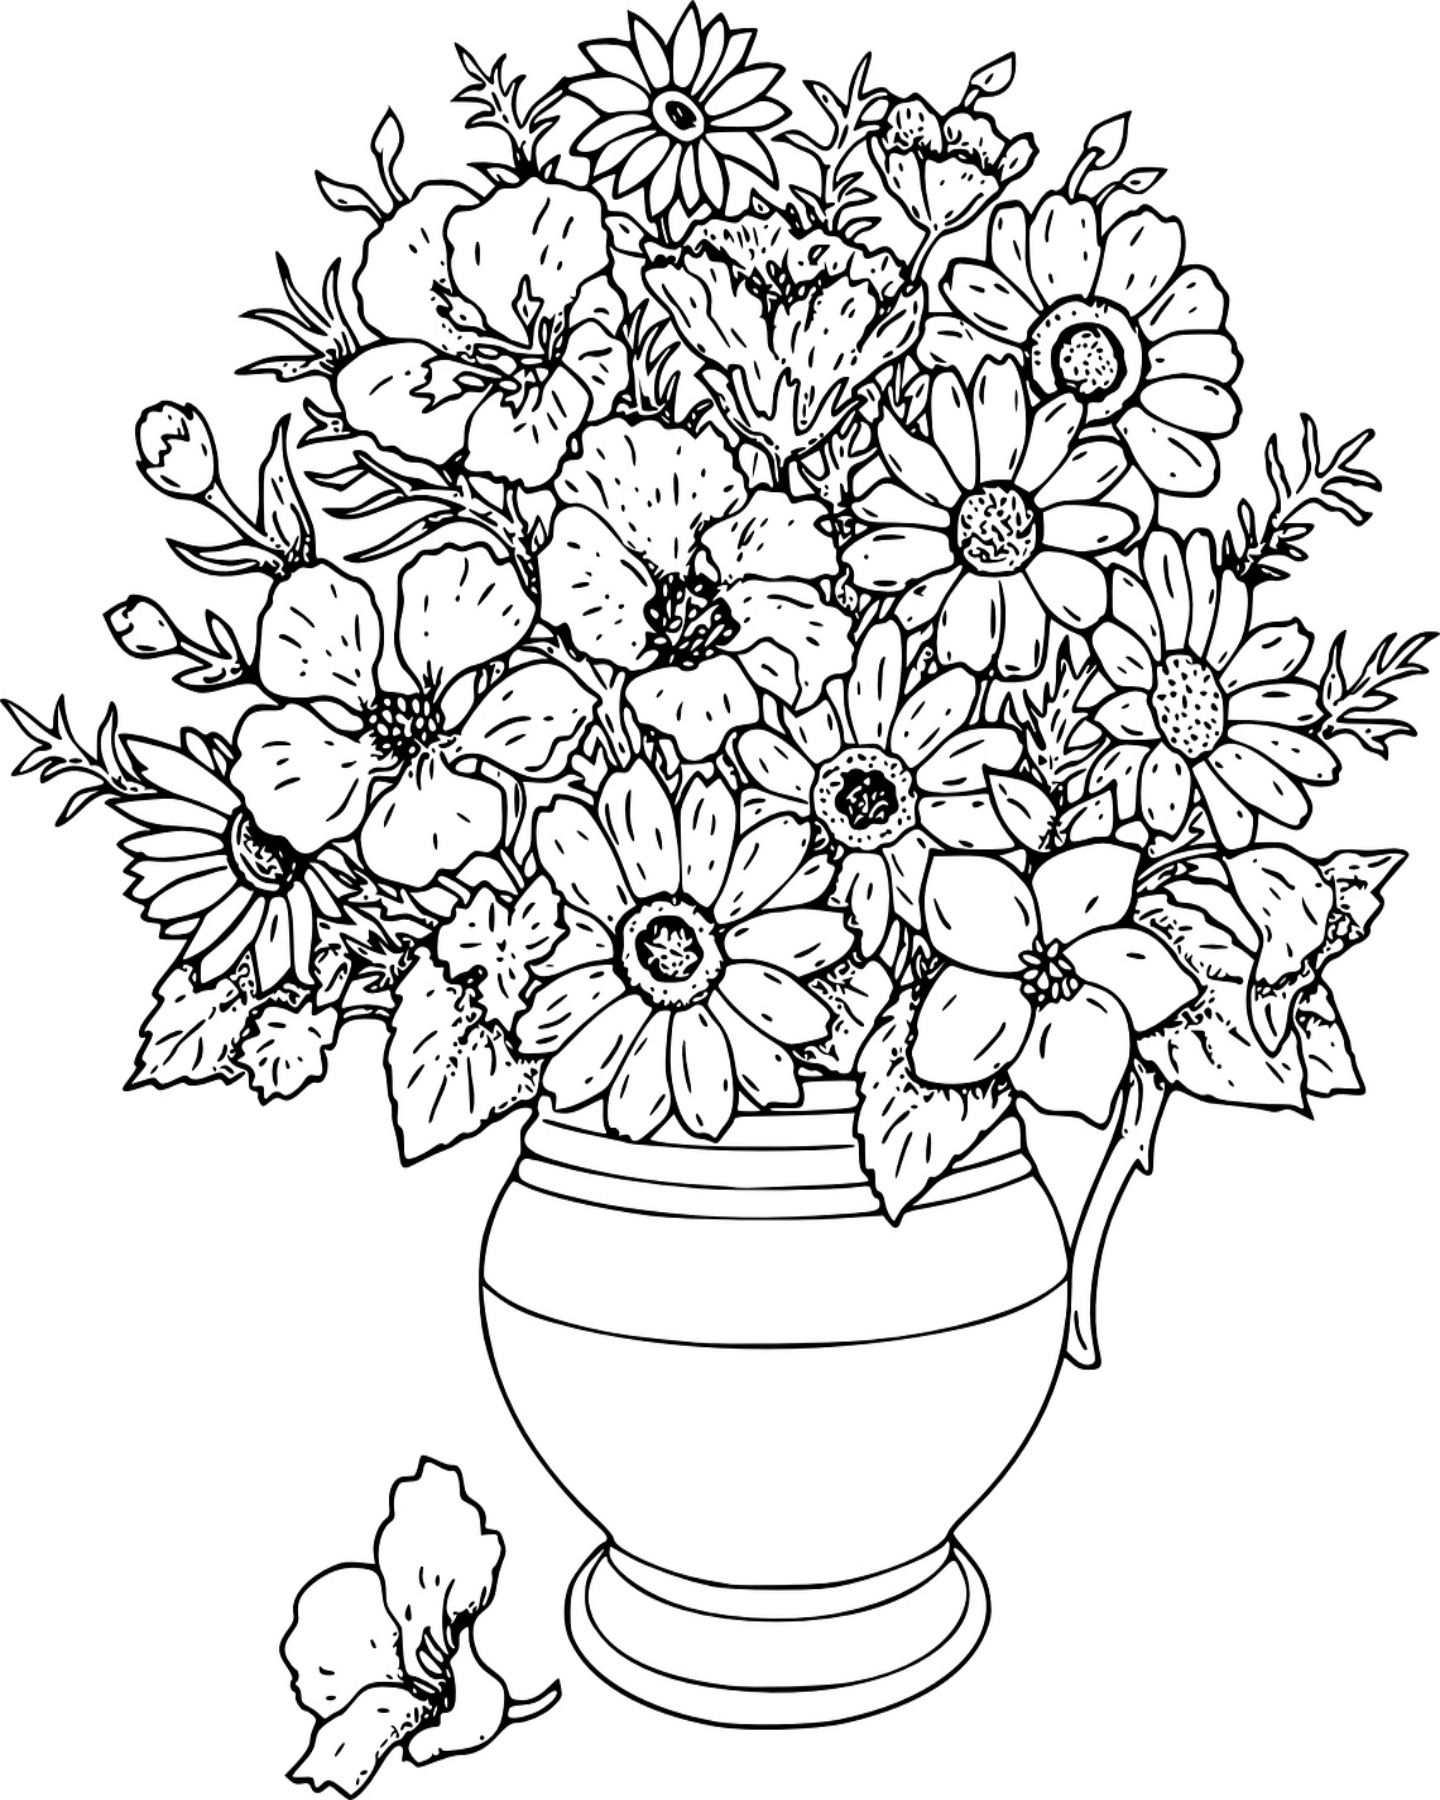 Coloring pages flowers - Flower Bouquet Coloring Page